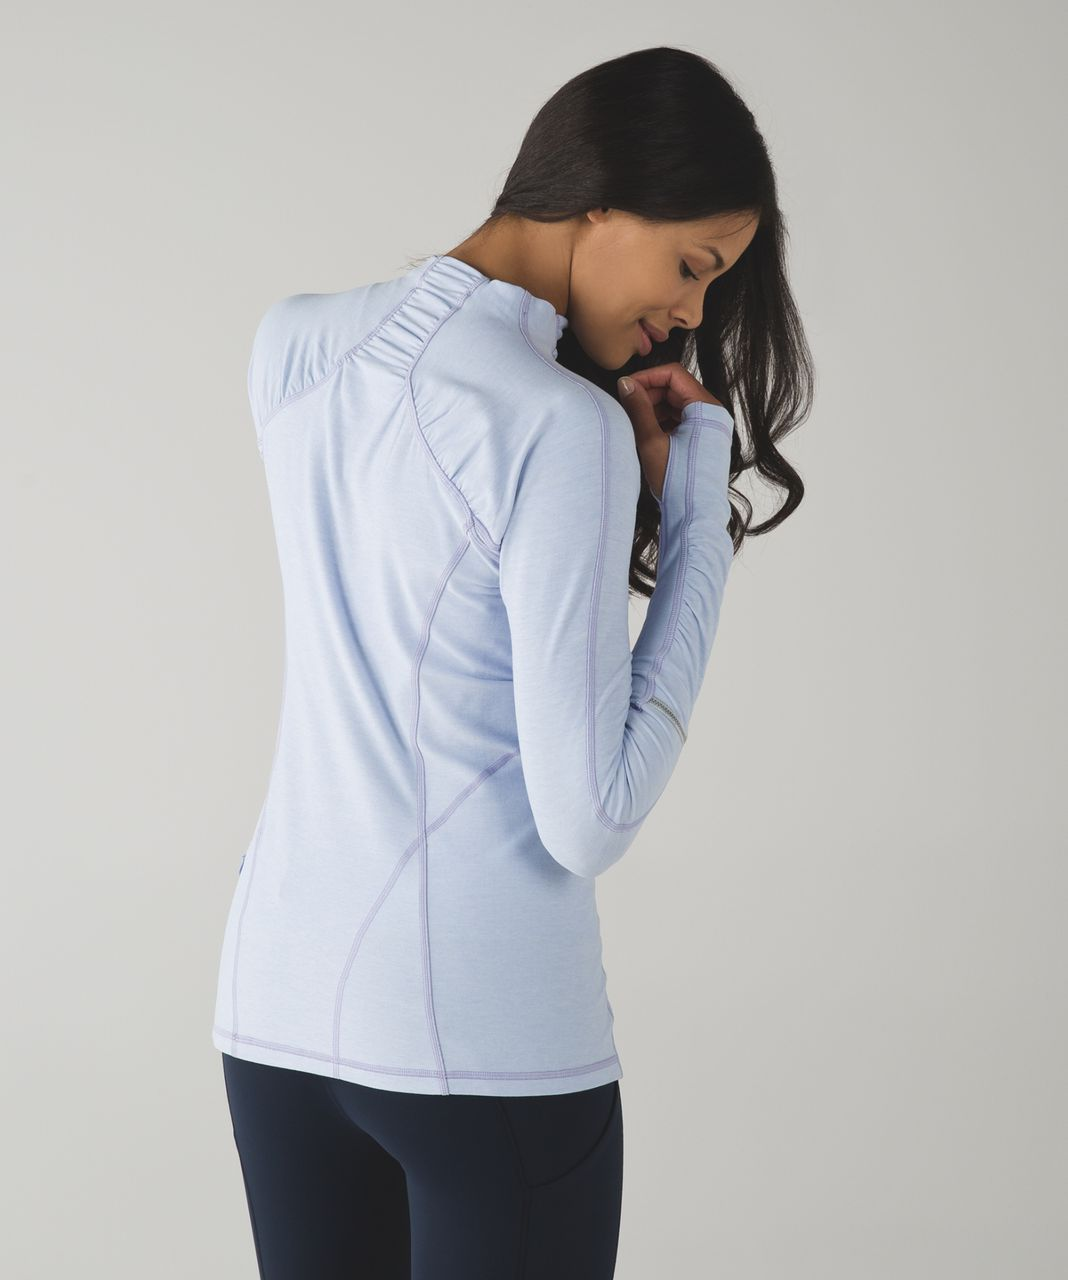 Lululemon Warm It Up Long Sleeve - Heathered Cool Breeze